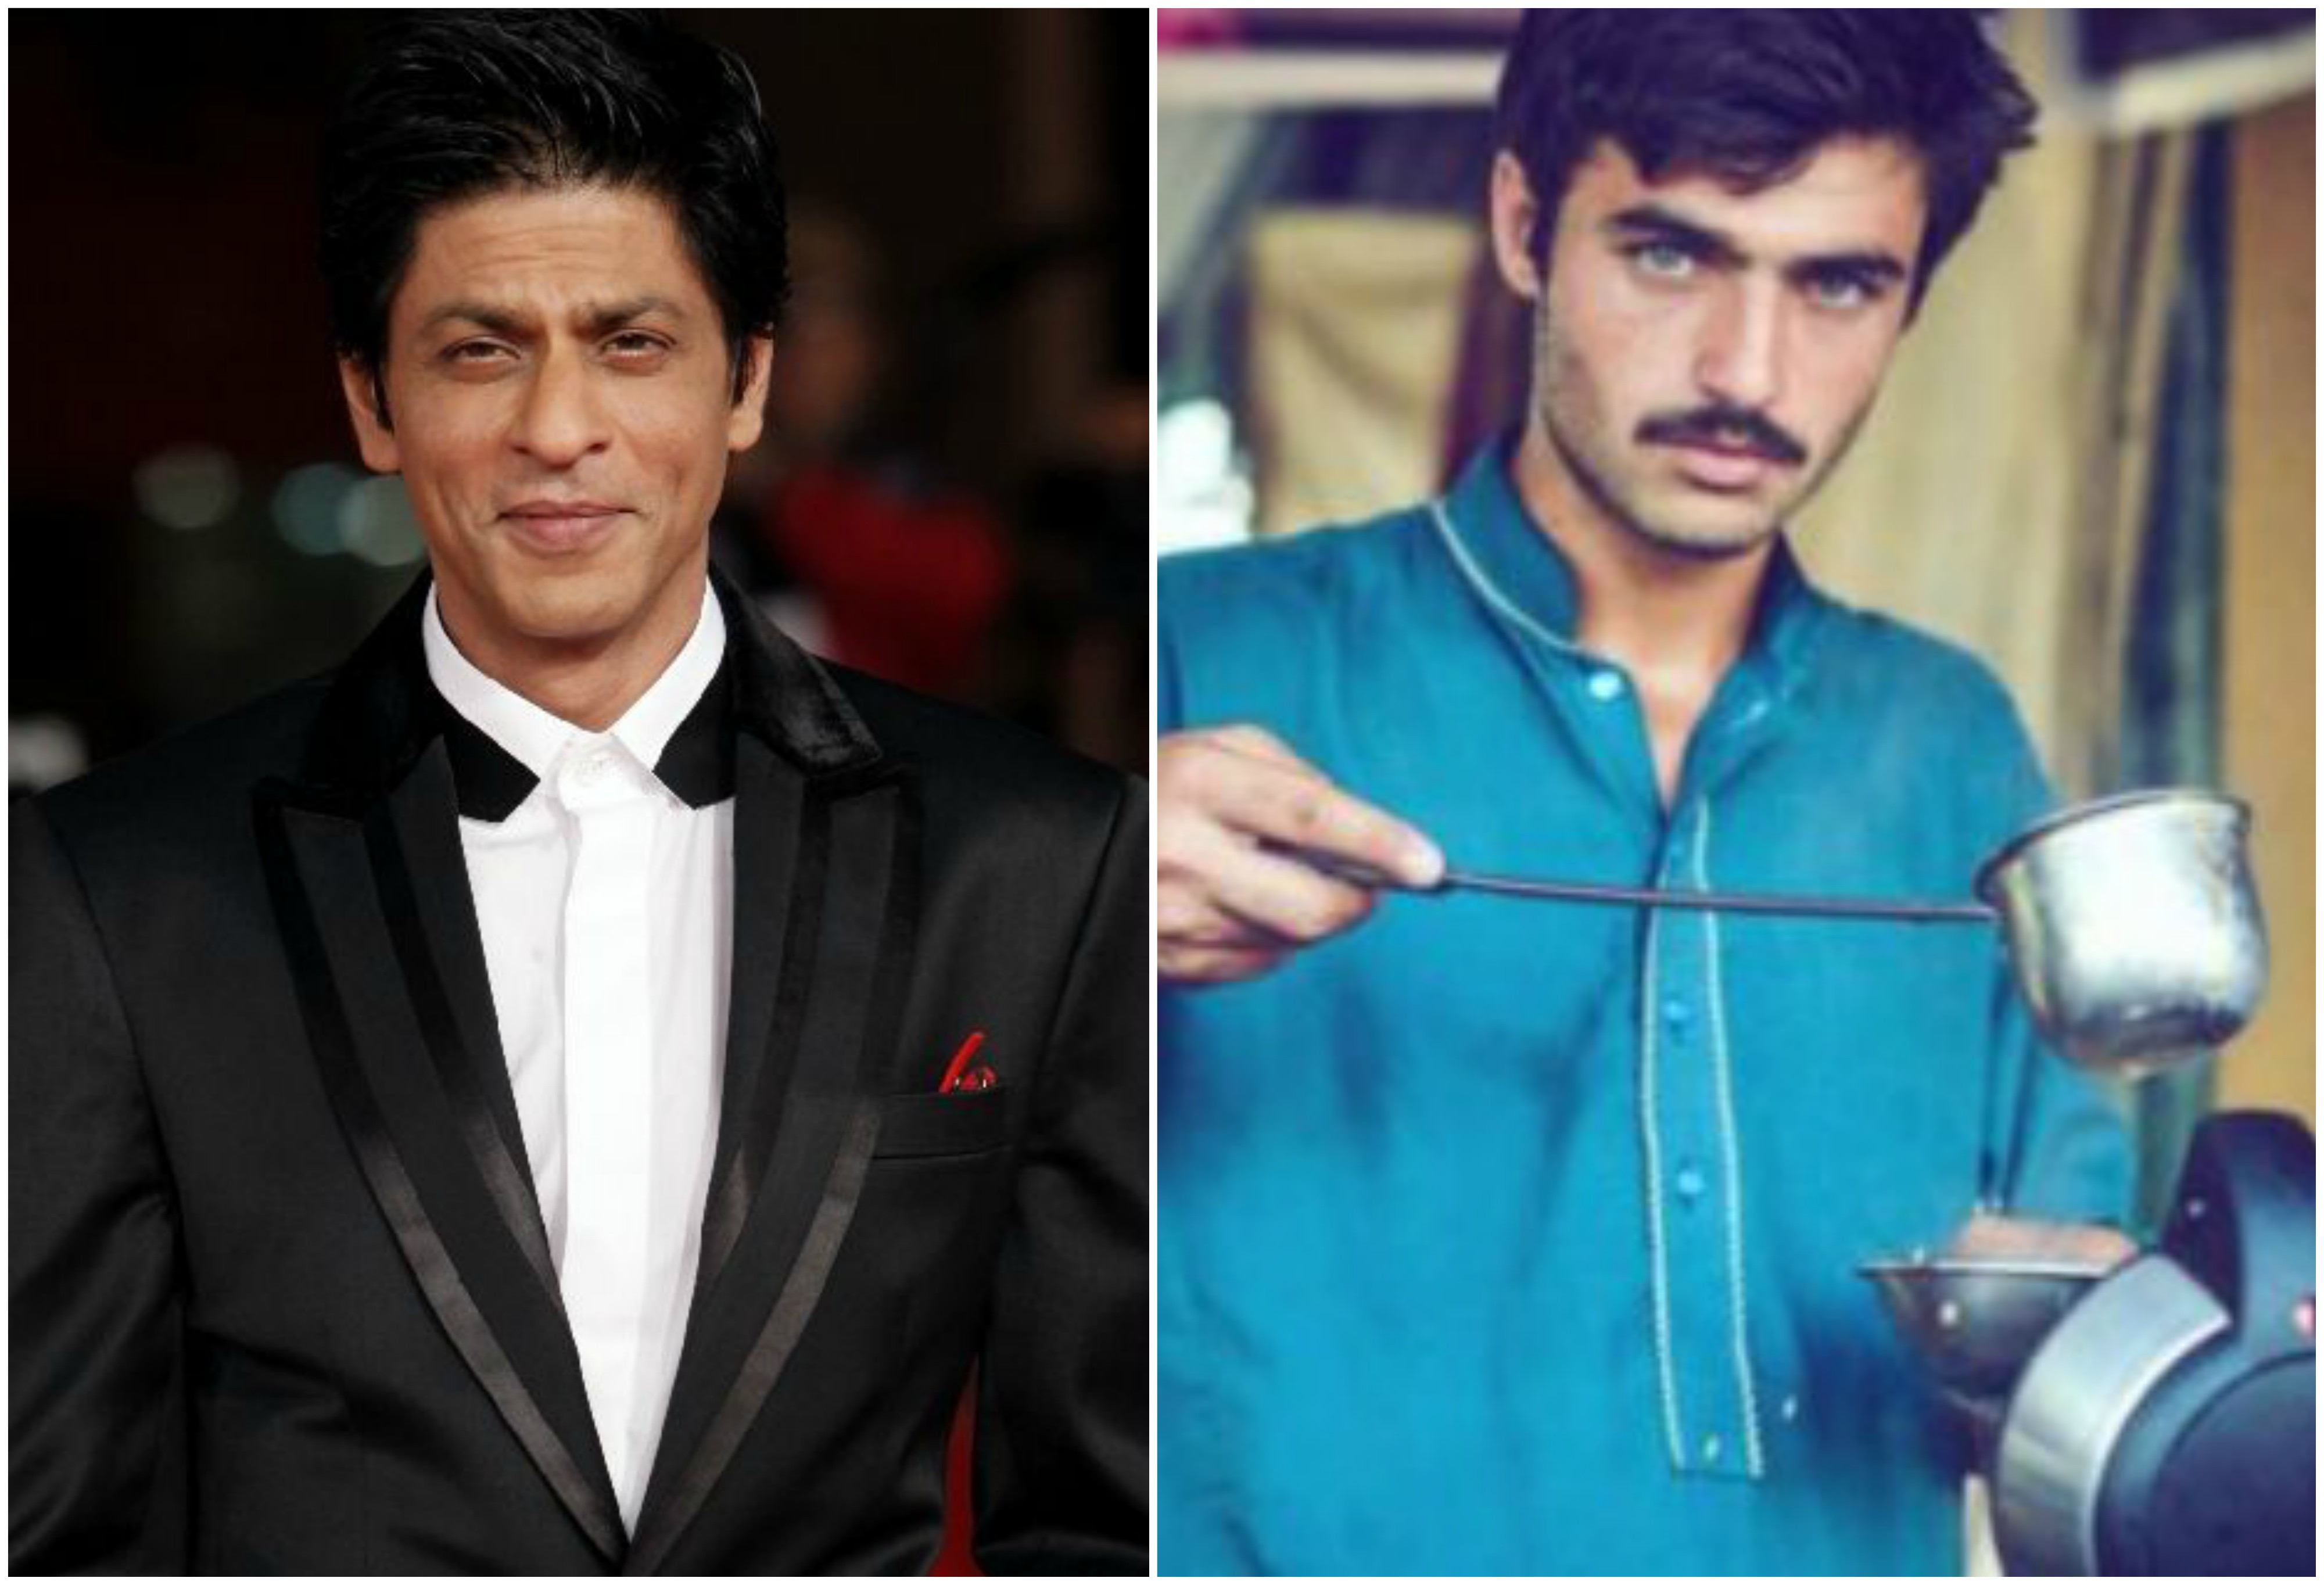 Pakistani Chaiwala thinks he looks like Shah Rukh Khan and SRK just Replied to it!